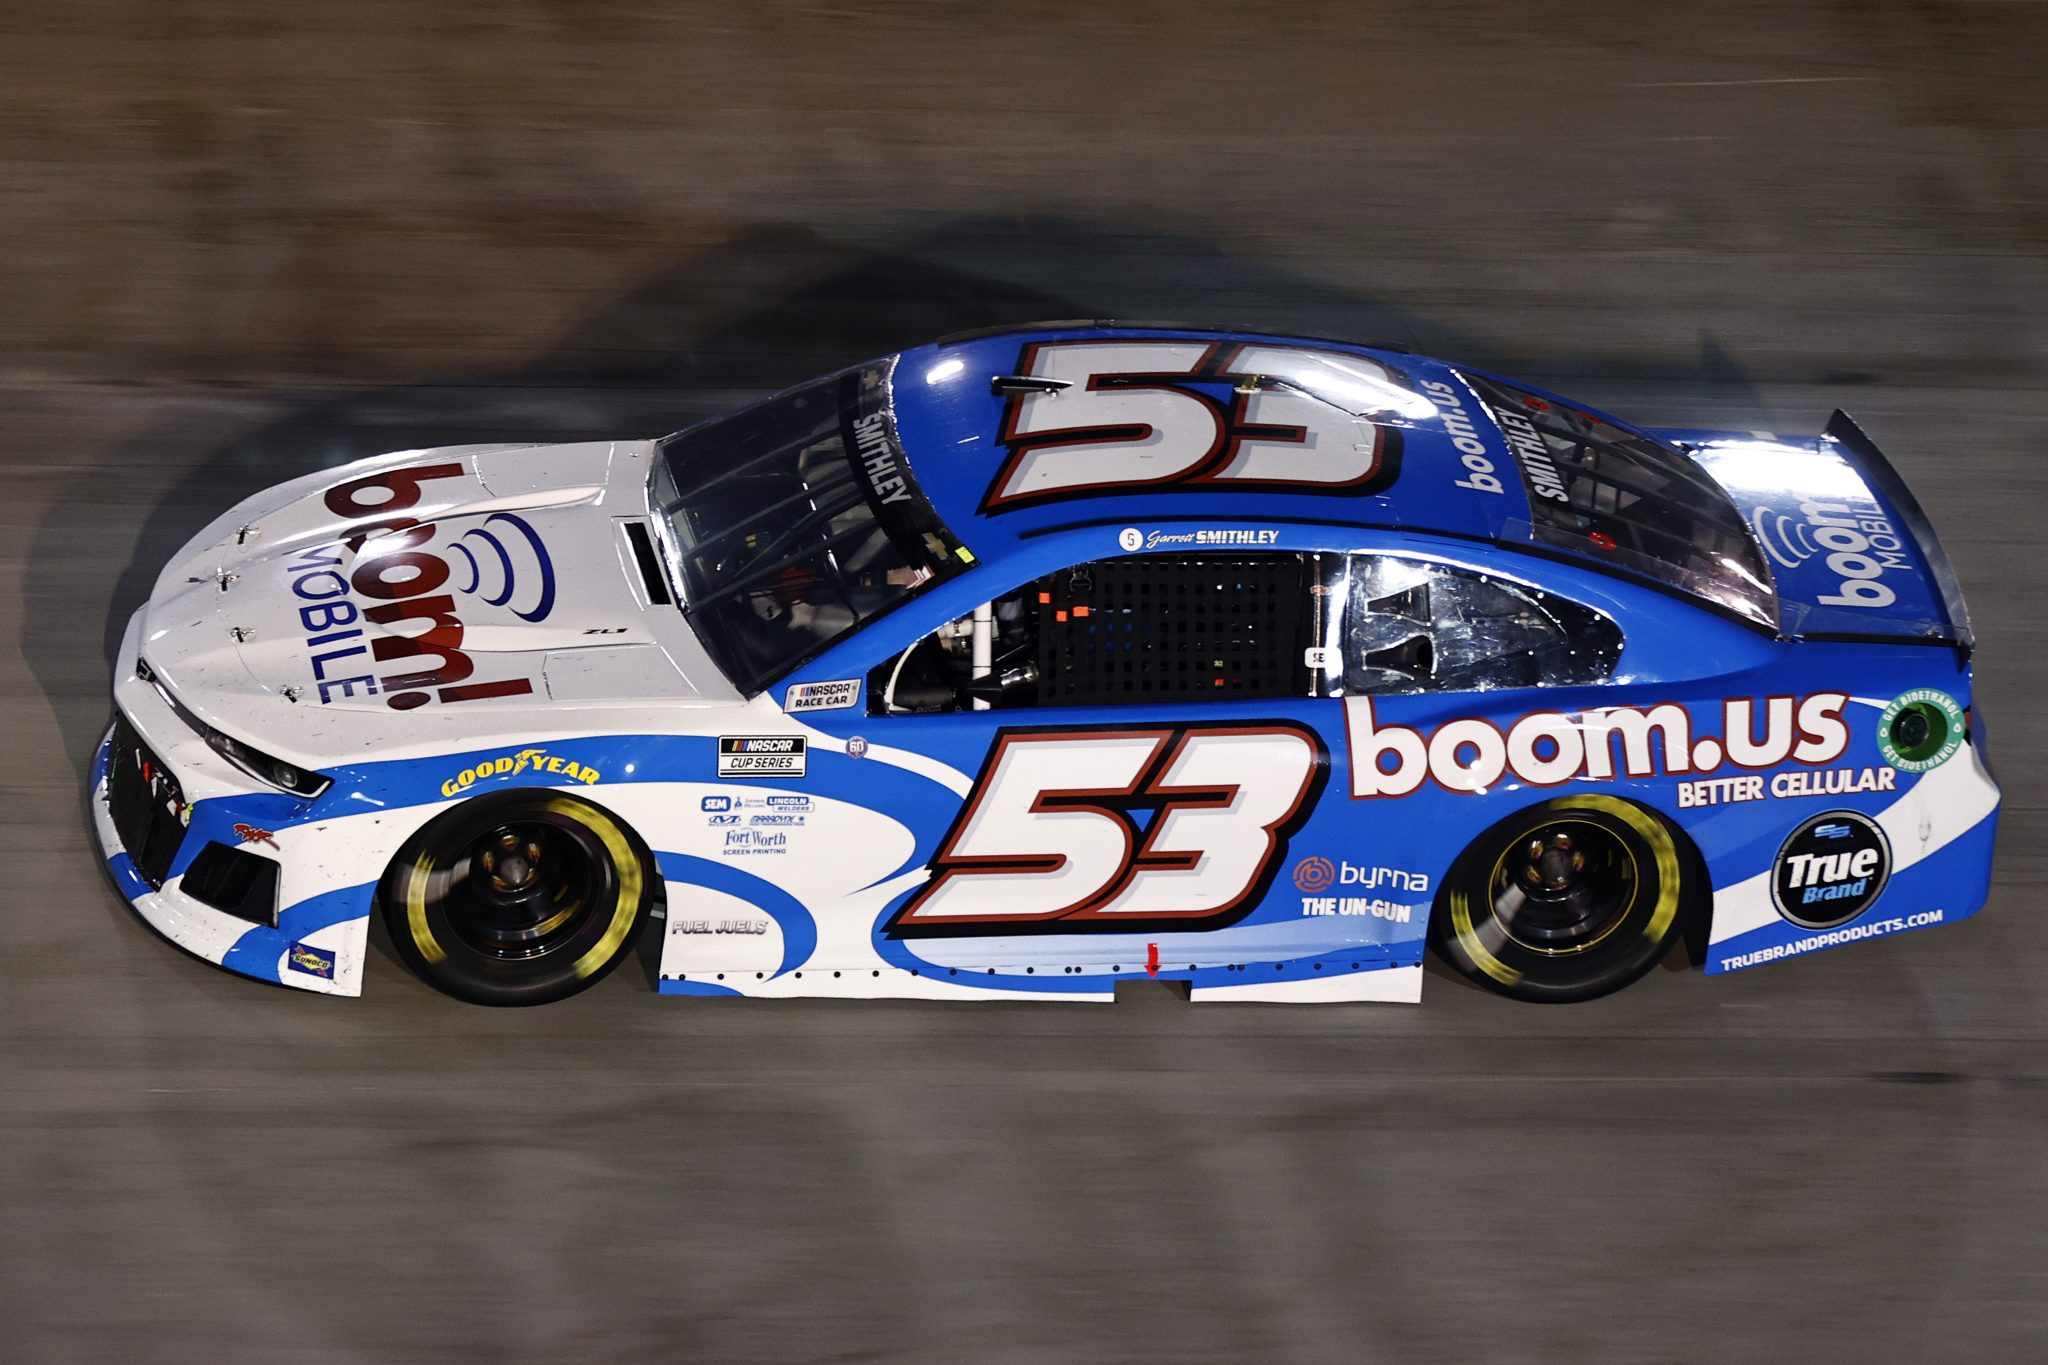 BRISTOL, TENNESSEE - SEPTEMBER 18: Garrett Smithley, driver of the #53 Boom Mobile Chevrolet, drives during the NASCAR Cup Series Bass Pro Shops Night Race at Bristol Motor Speedway on September 18, 2021 in Bristol, Tennessee. (Photo by Jared C. Tilton/Getty Images) | Getty Images